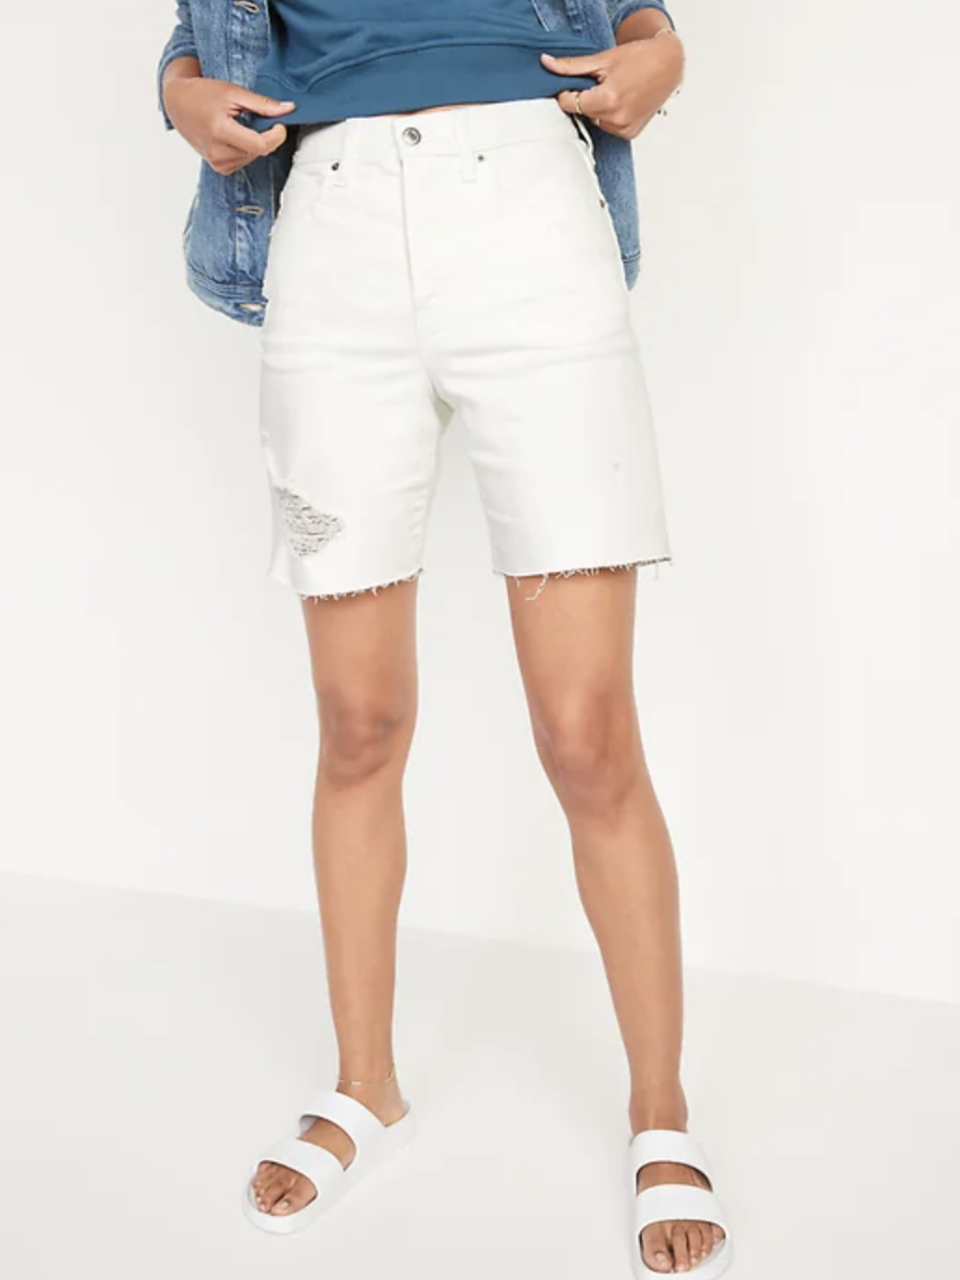 Extra High-Waisted Sky Hi Button-Fly Cut-Off Jean Shorts in White Lilies (Photo via Old Navy)